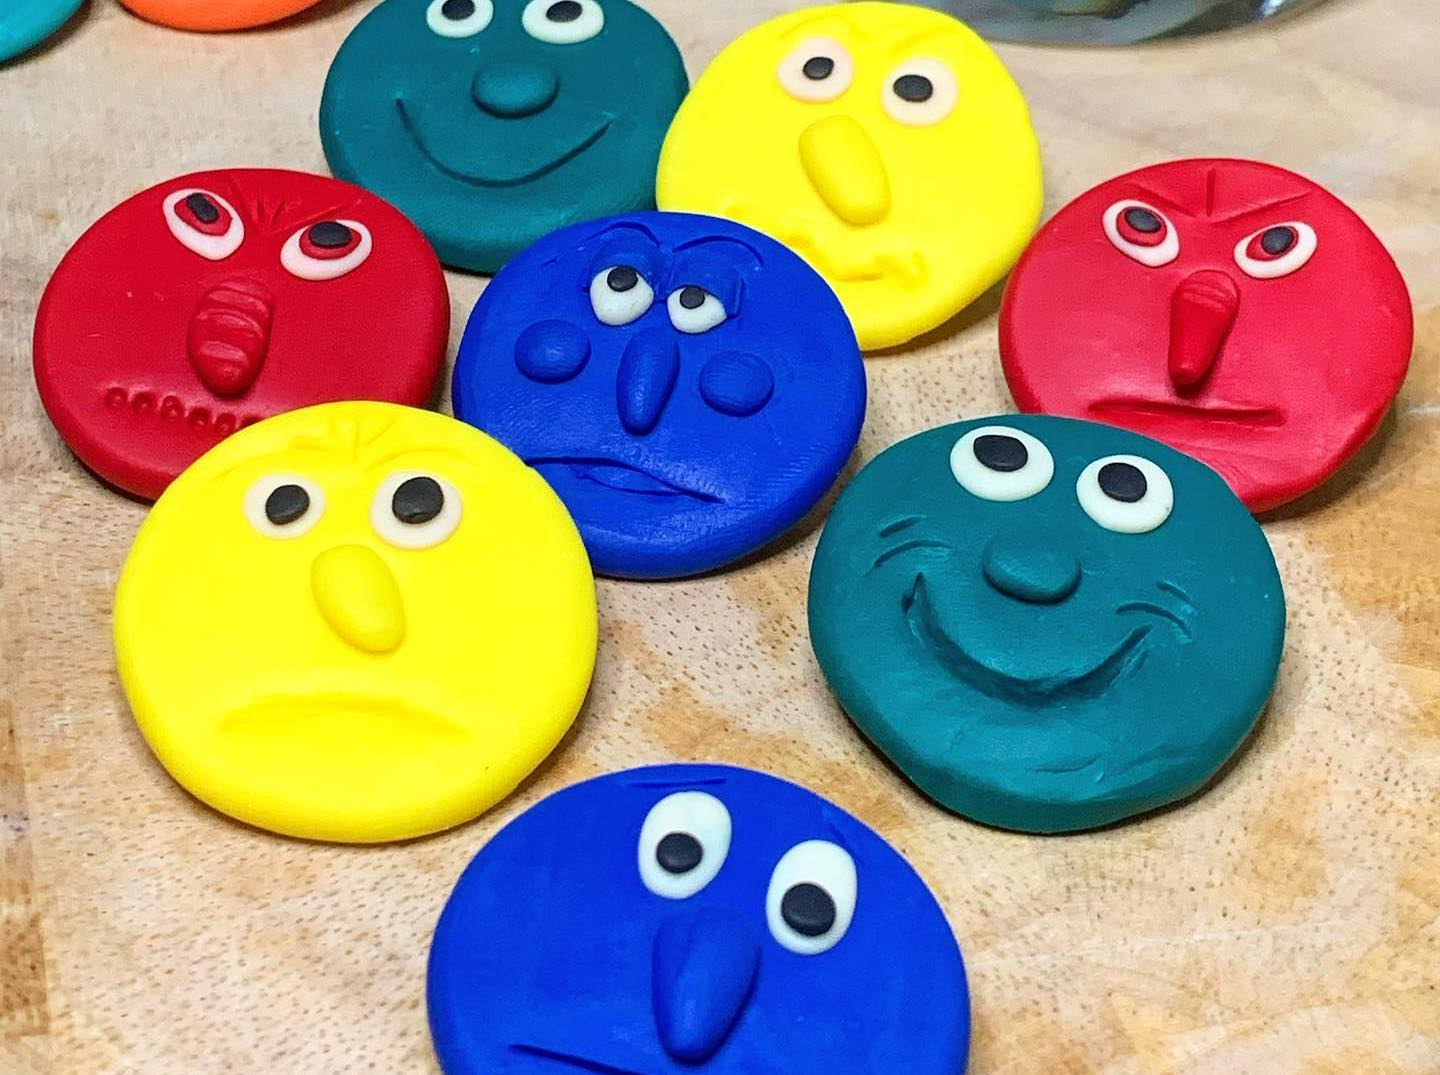 Polymer clay emotions faces (8 faces per set)